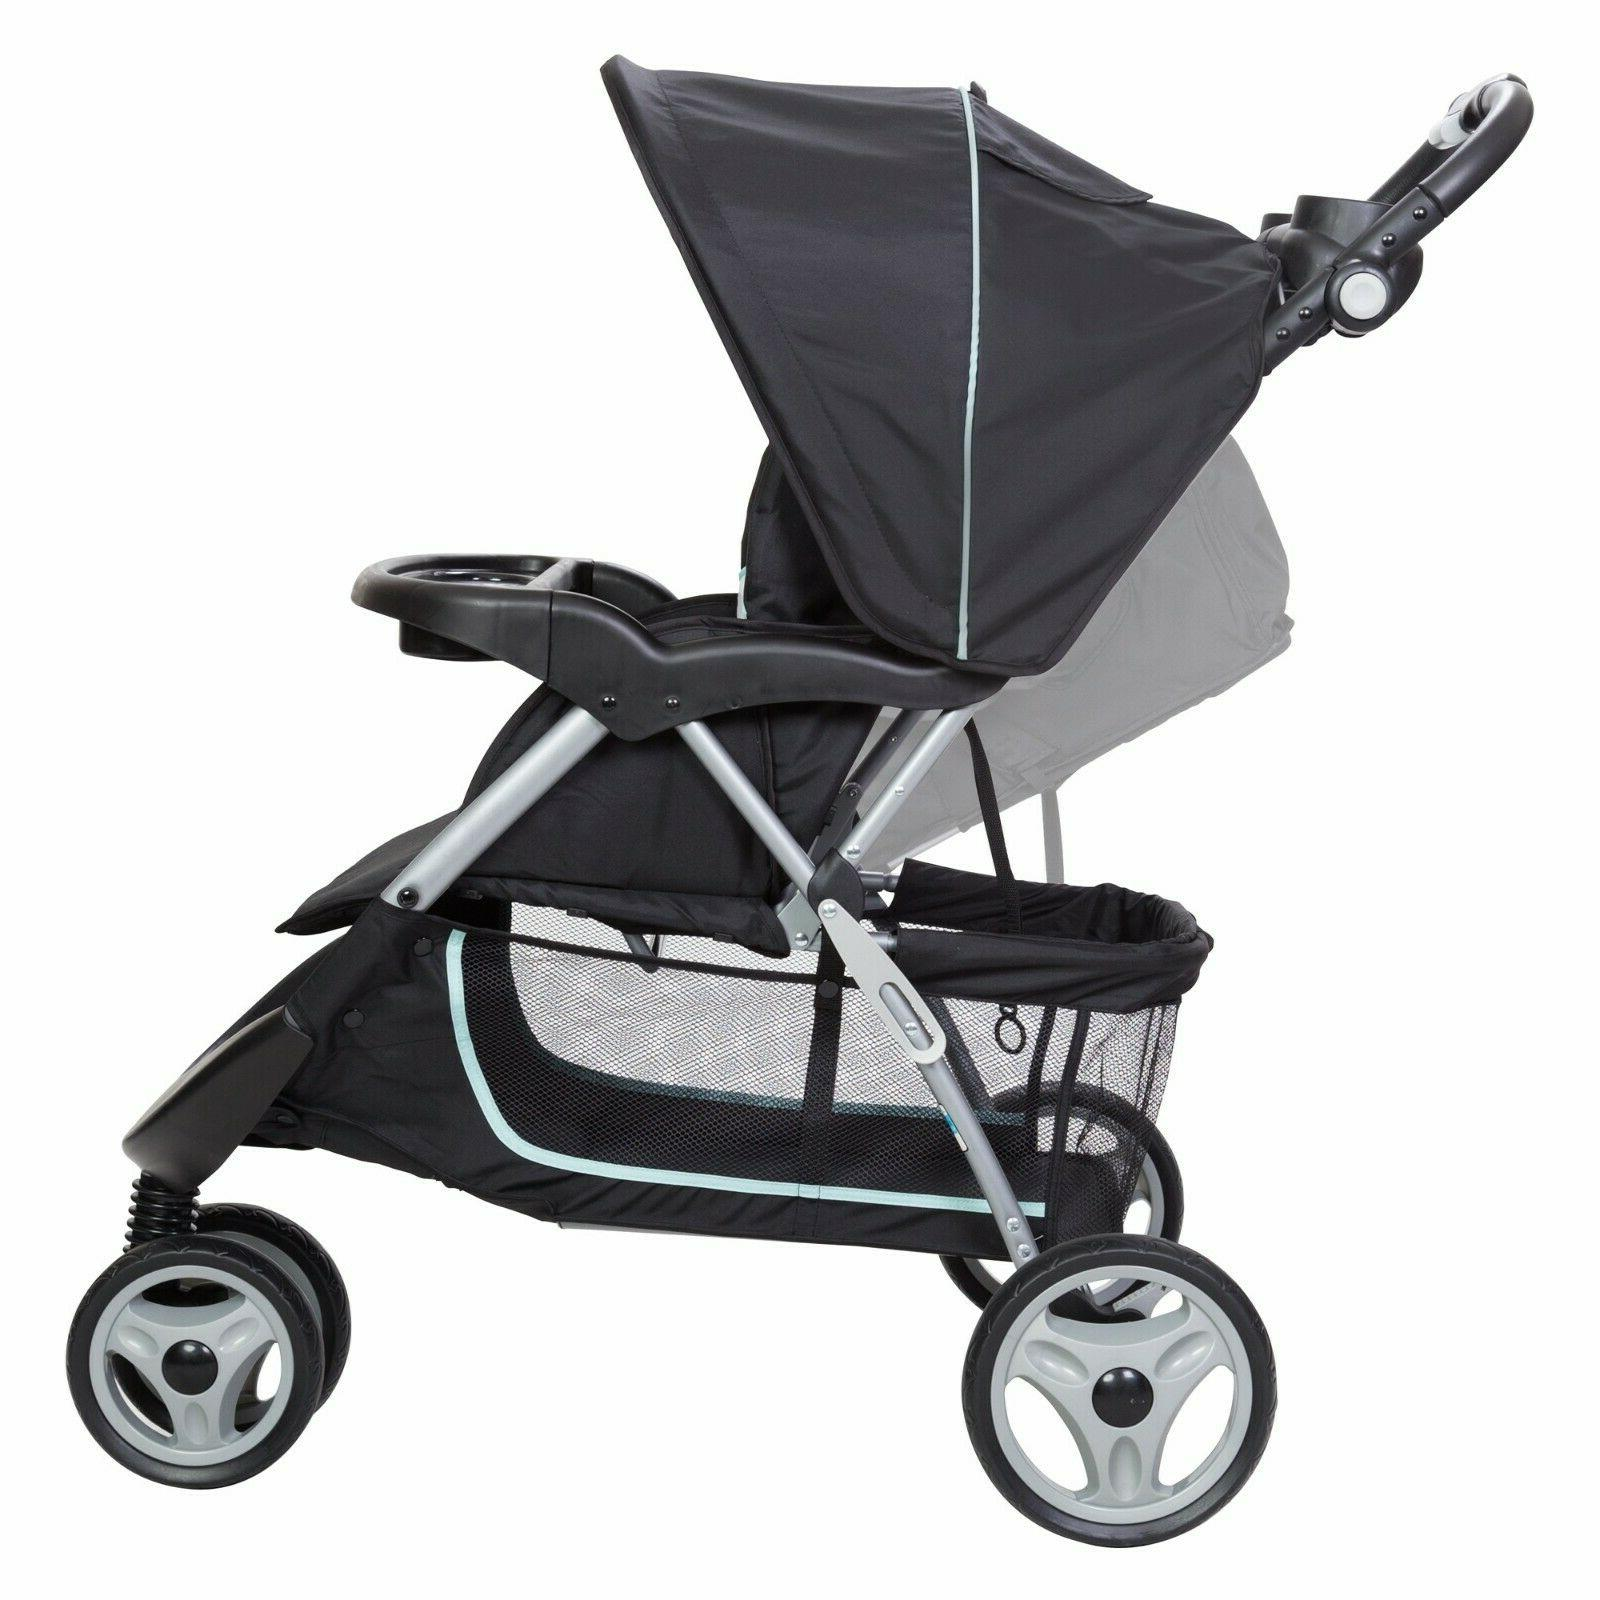 Baby System with Infant Swing High Combo